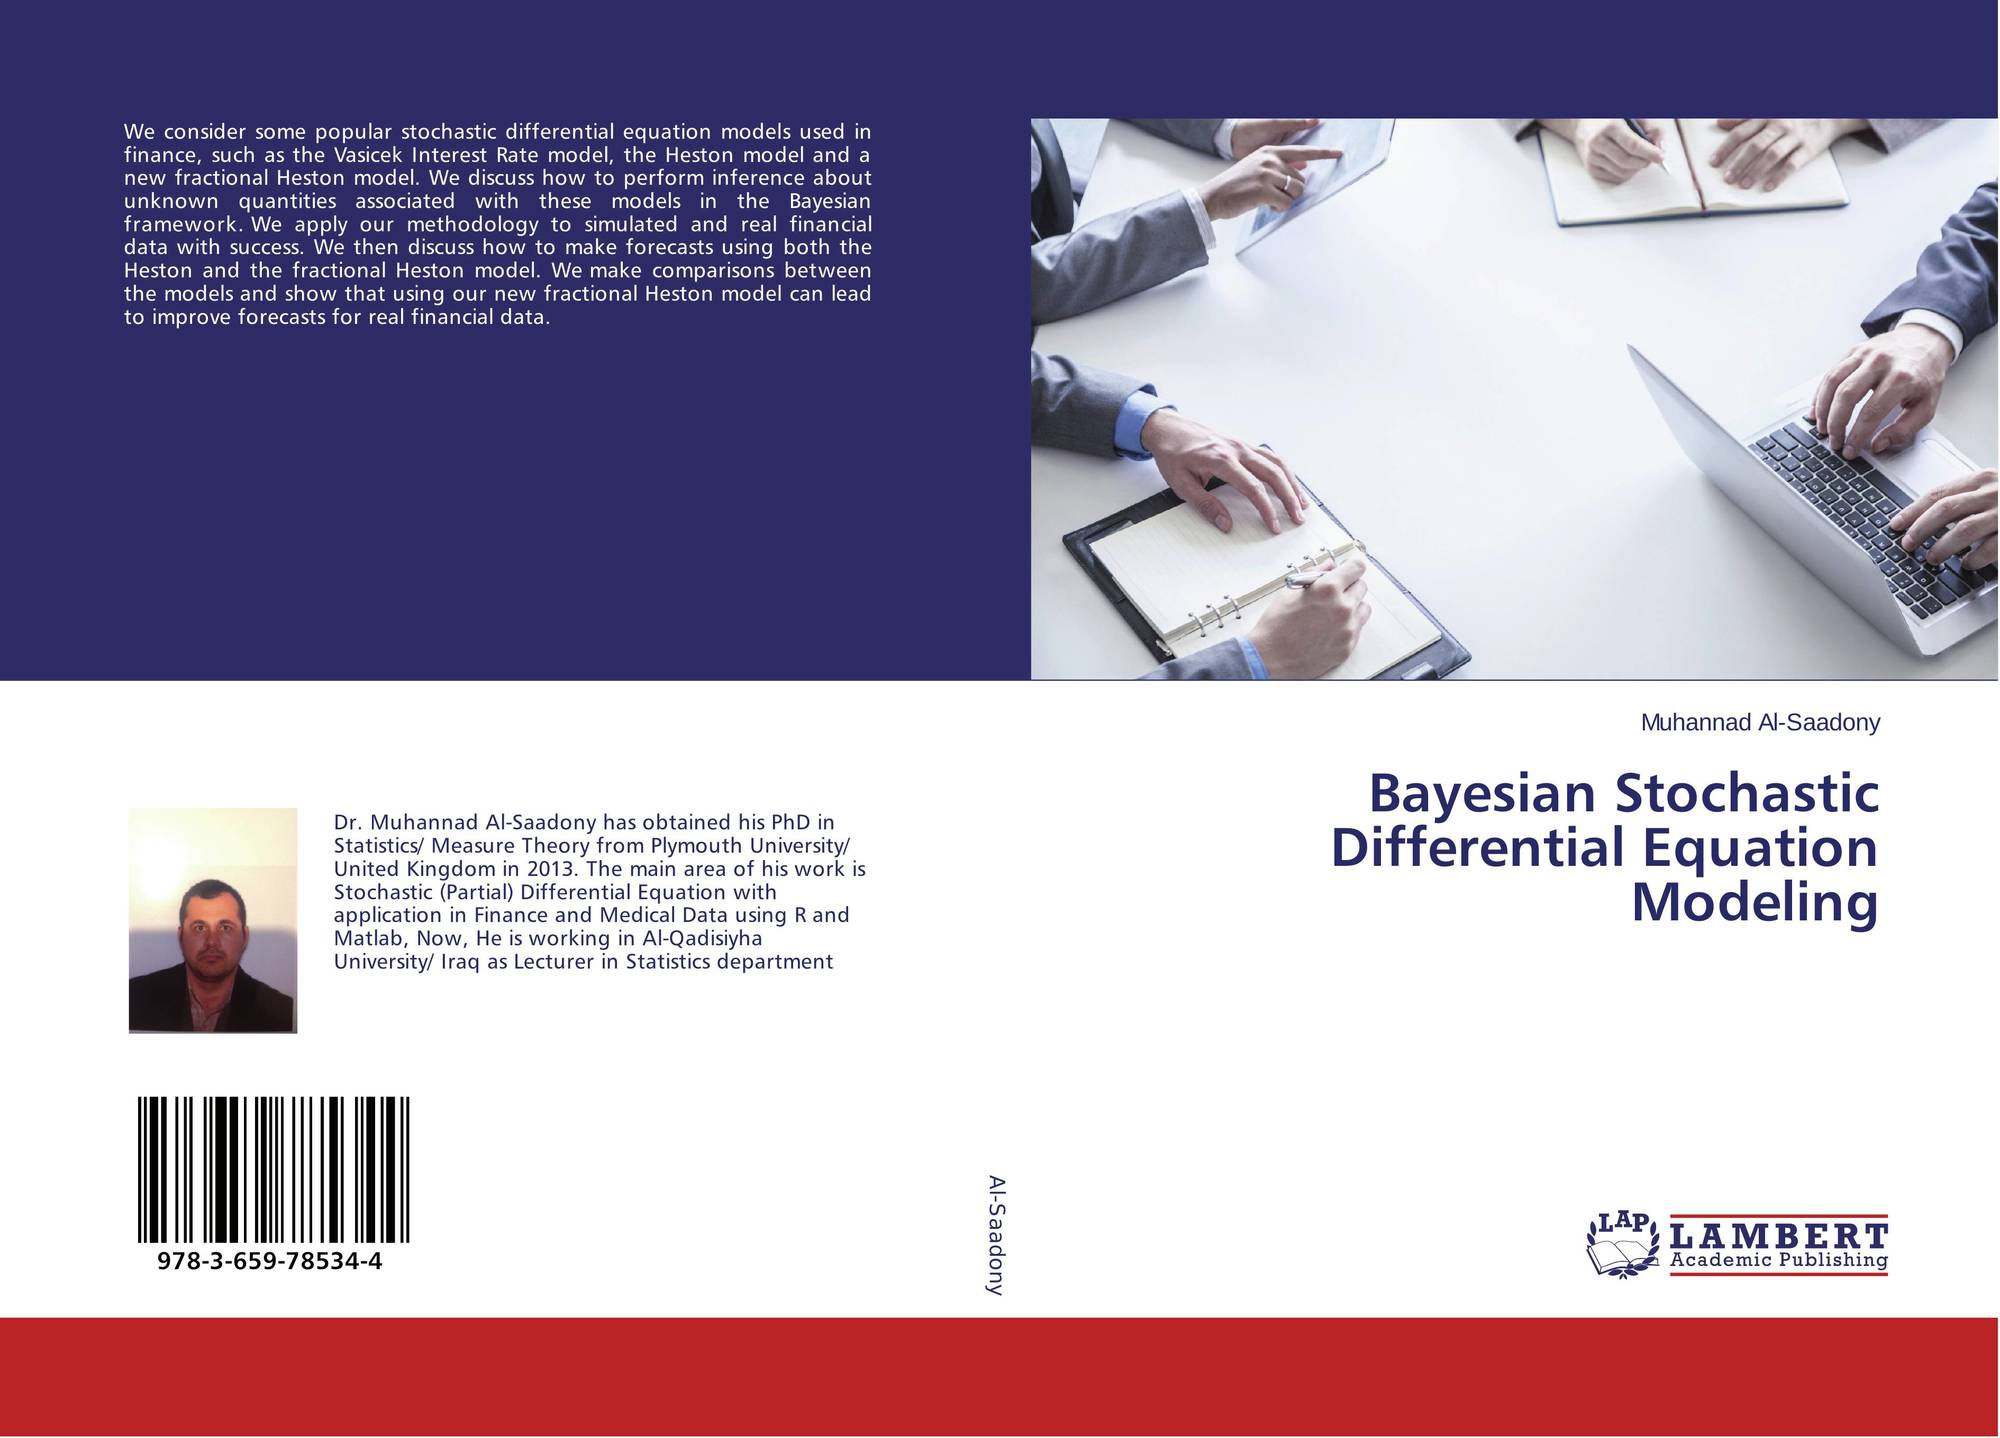 Bayesian Stochastic Differential Equation Modeling, 978-3-659-78534